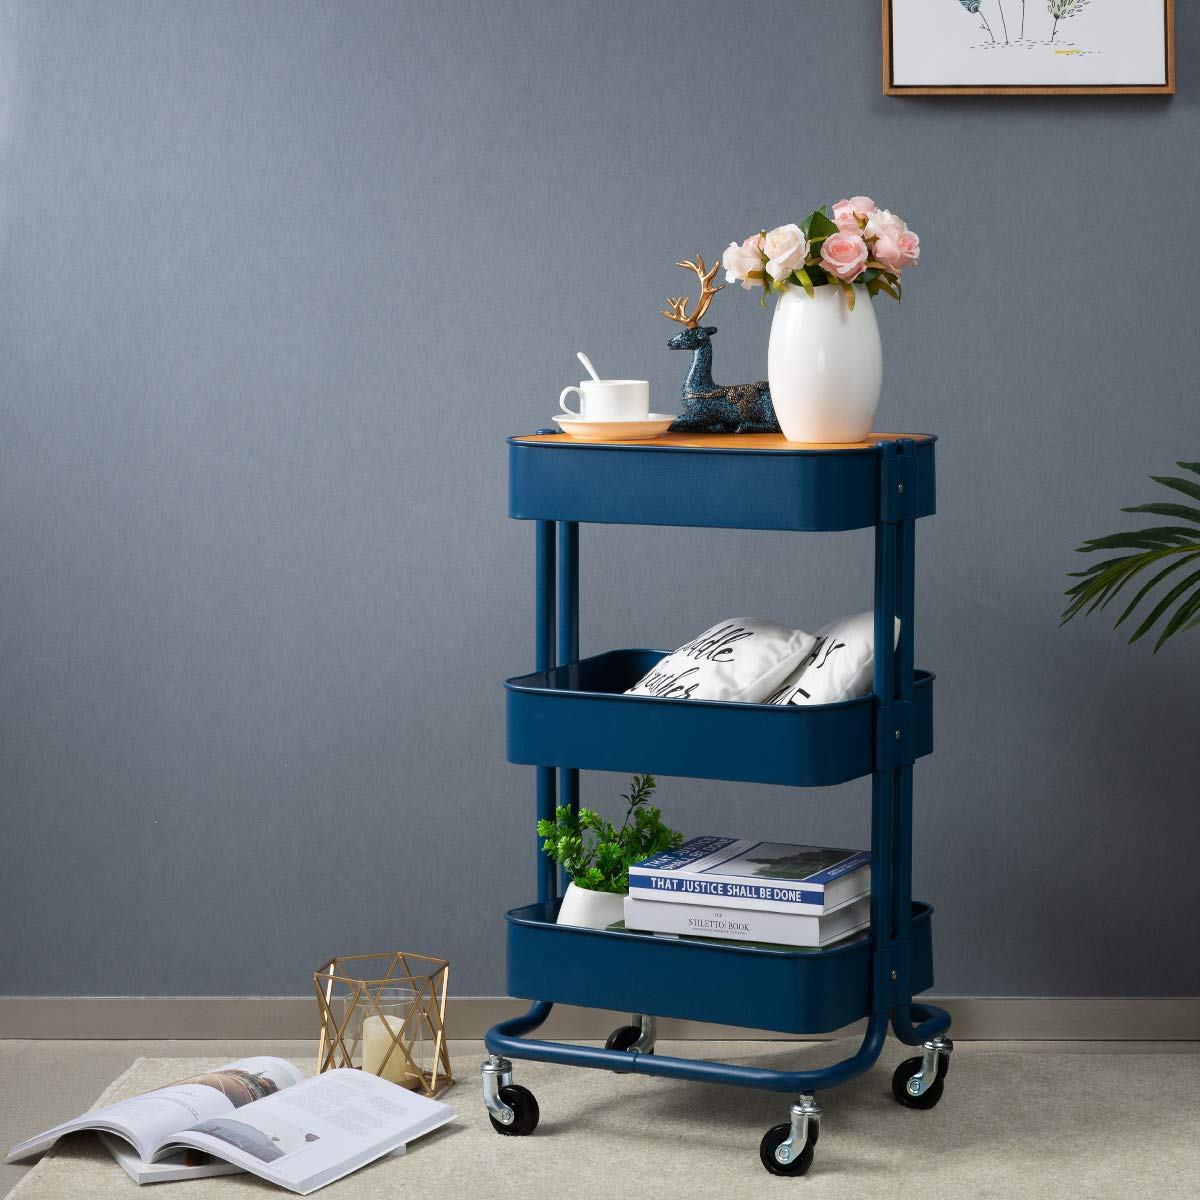 HollyHOME 3-Tier Metal Utility Service Cart Rolling Storage Shelves with Planks, Movable Storage Utility Cart, Navy Blue